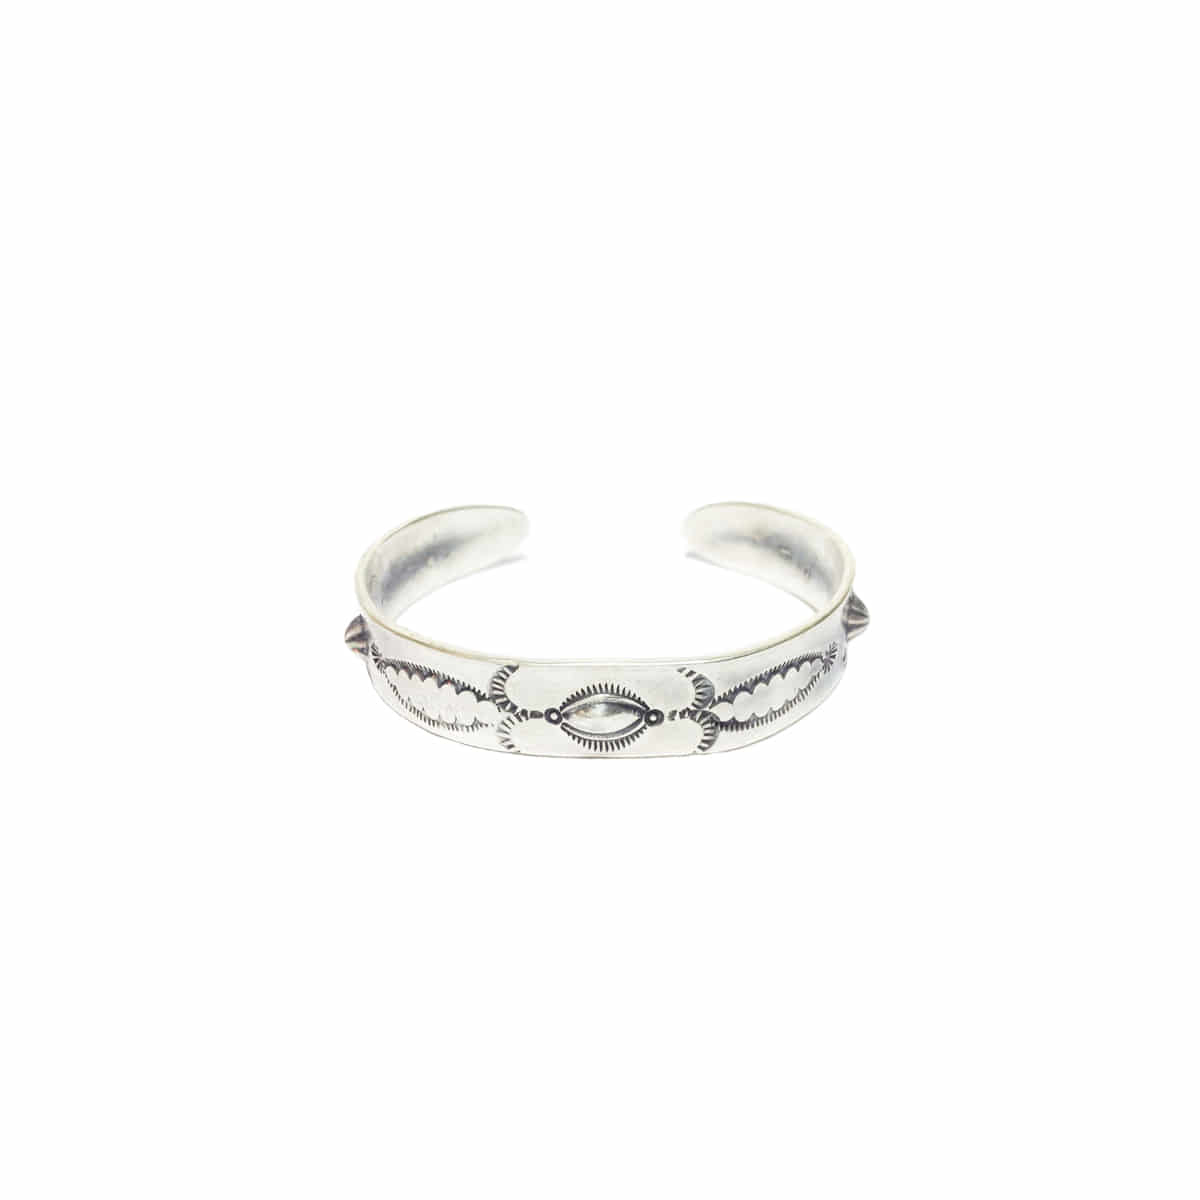 [NORTH WORKS] 900 SILVER CUFF BANGLE 'W-004'